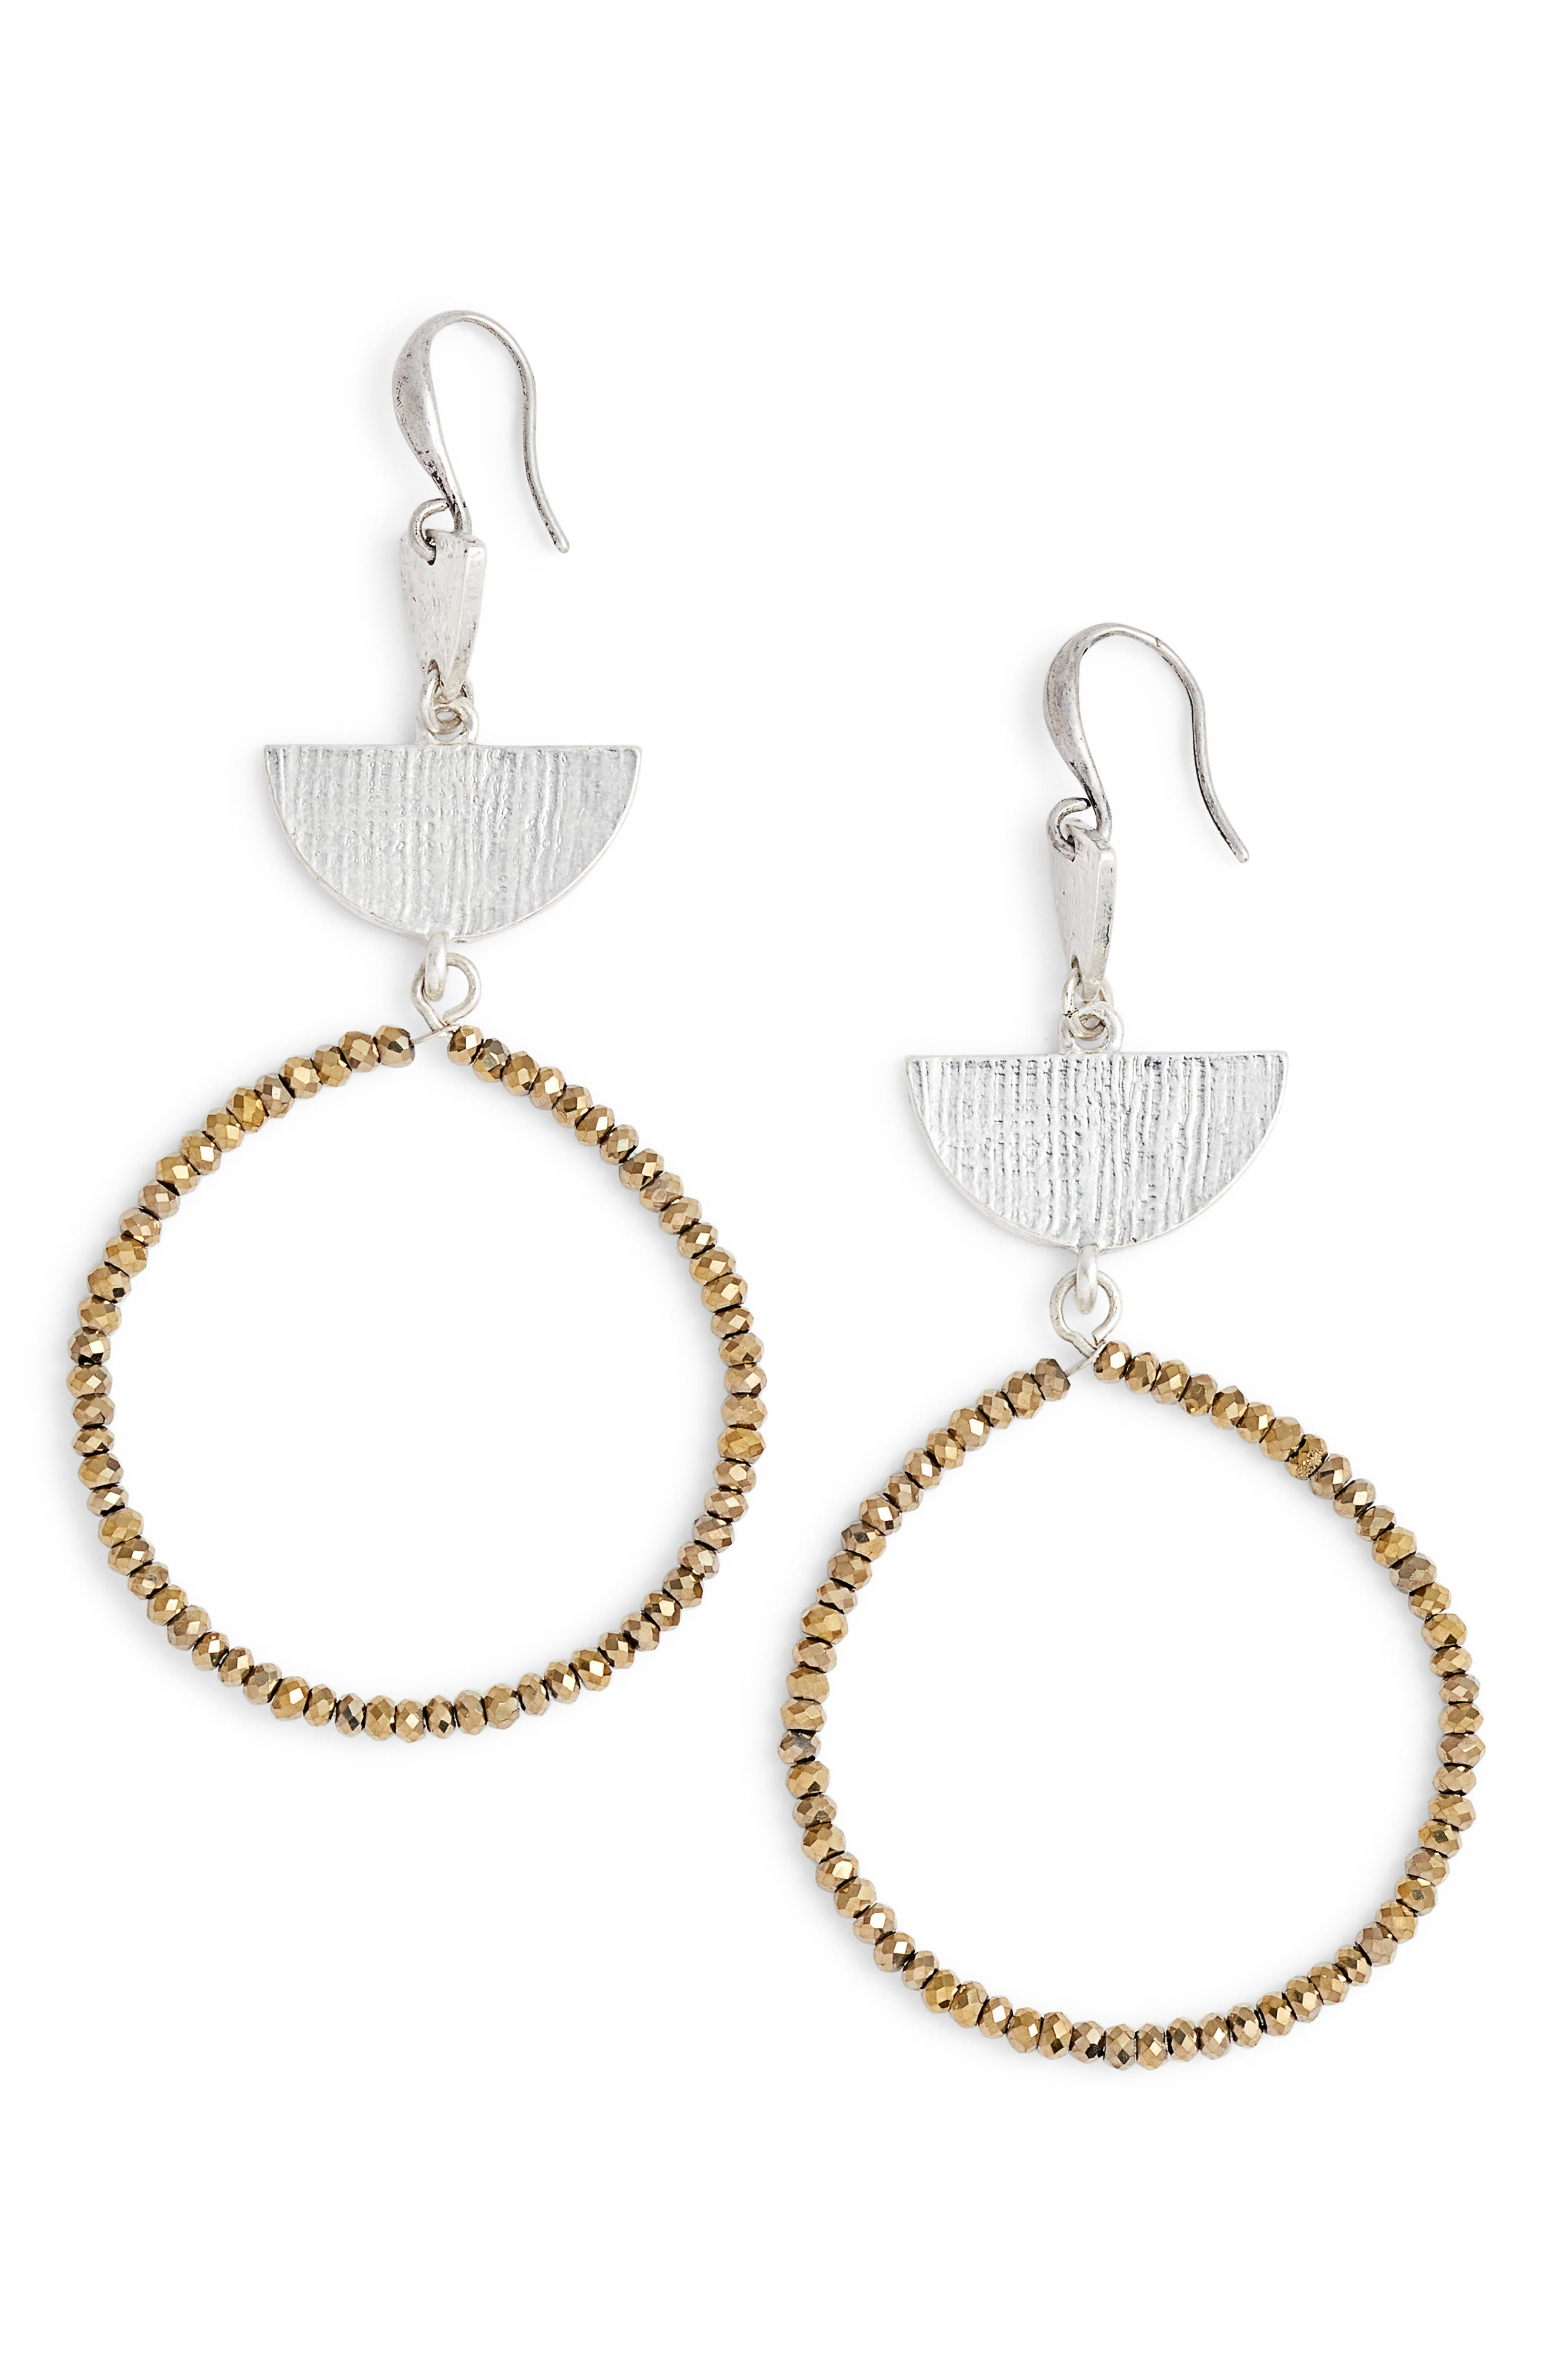 Etched Plate Beaded Earrings,                         Main,                         color, Metallic- Rhodium